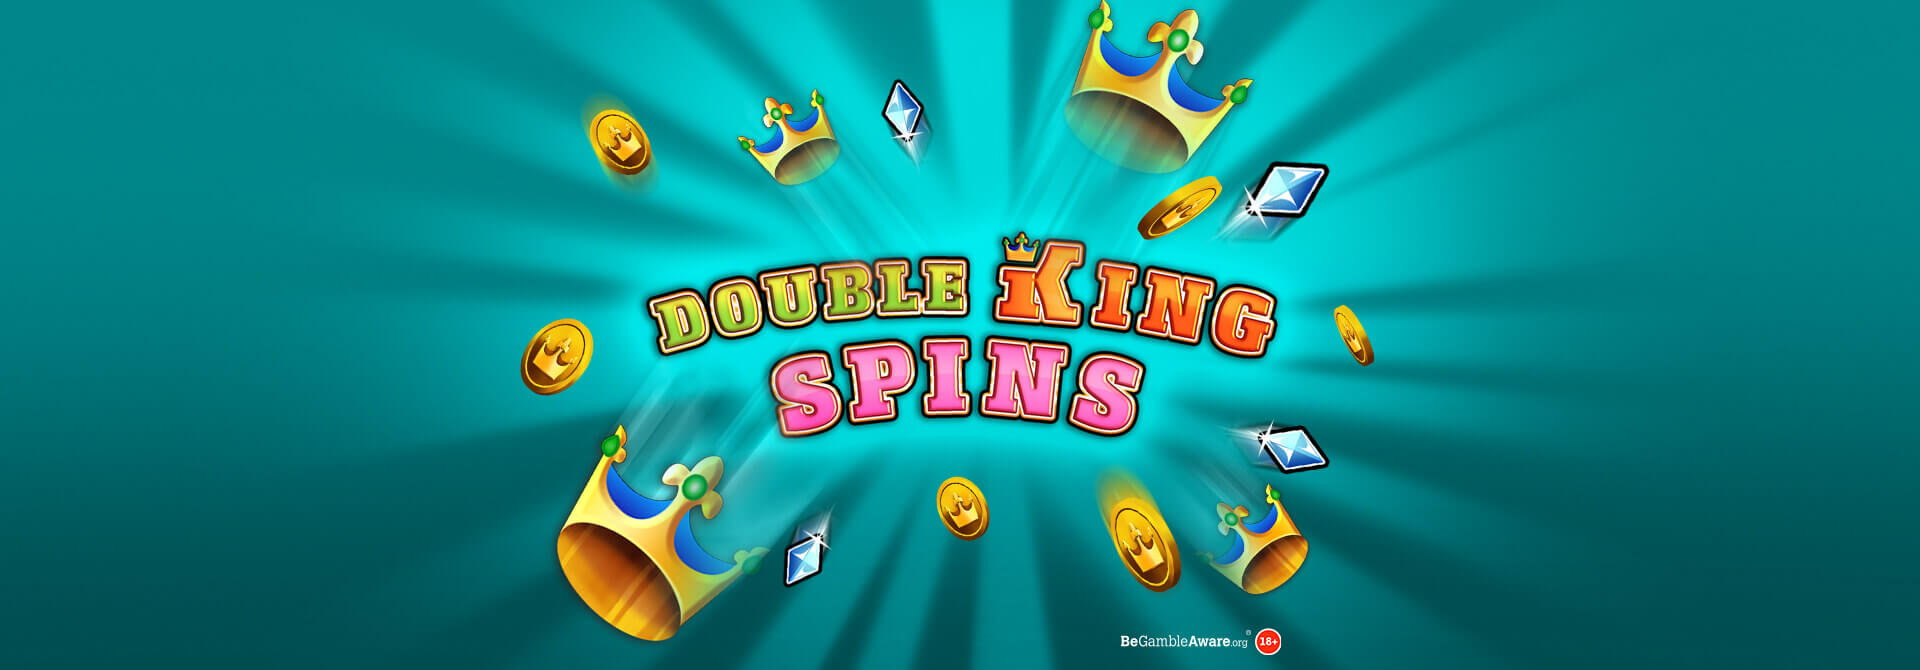 Mr spin new games